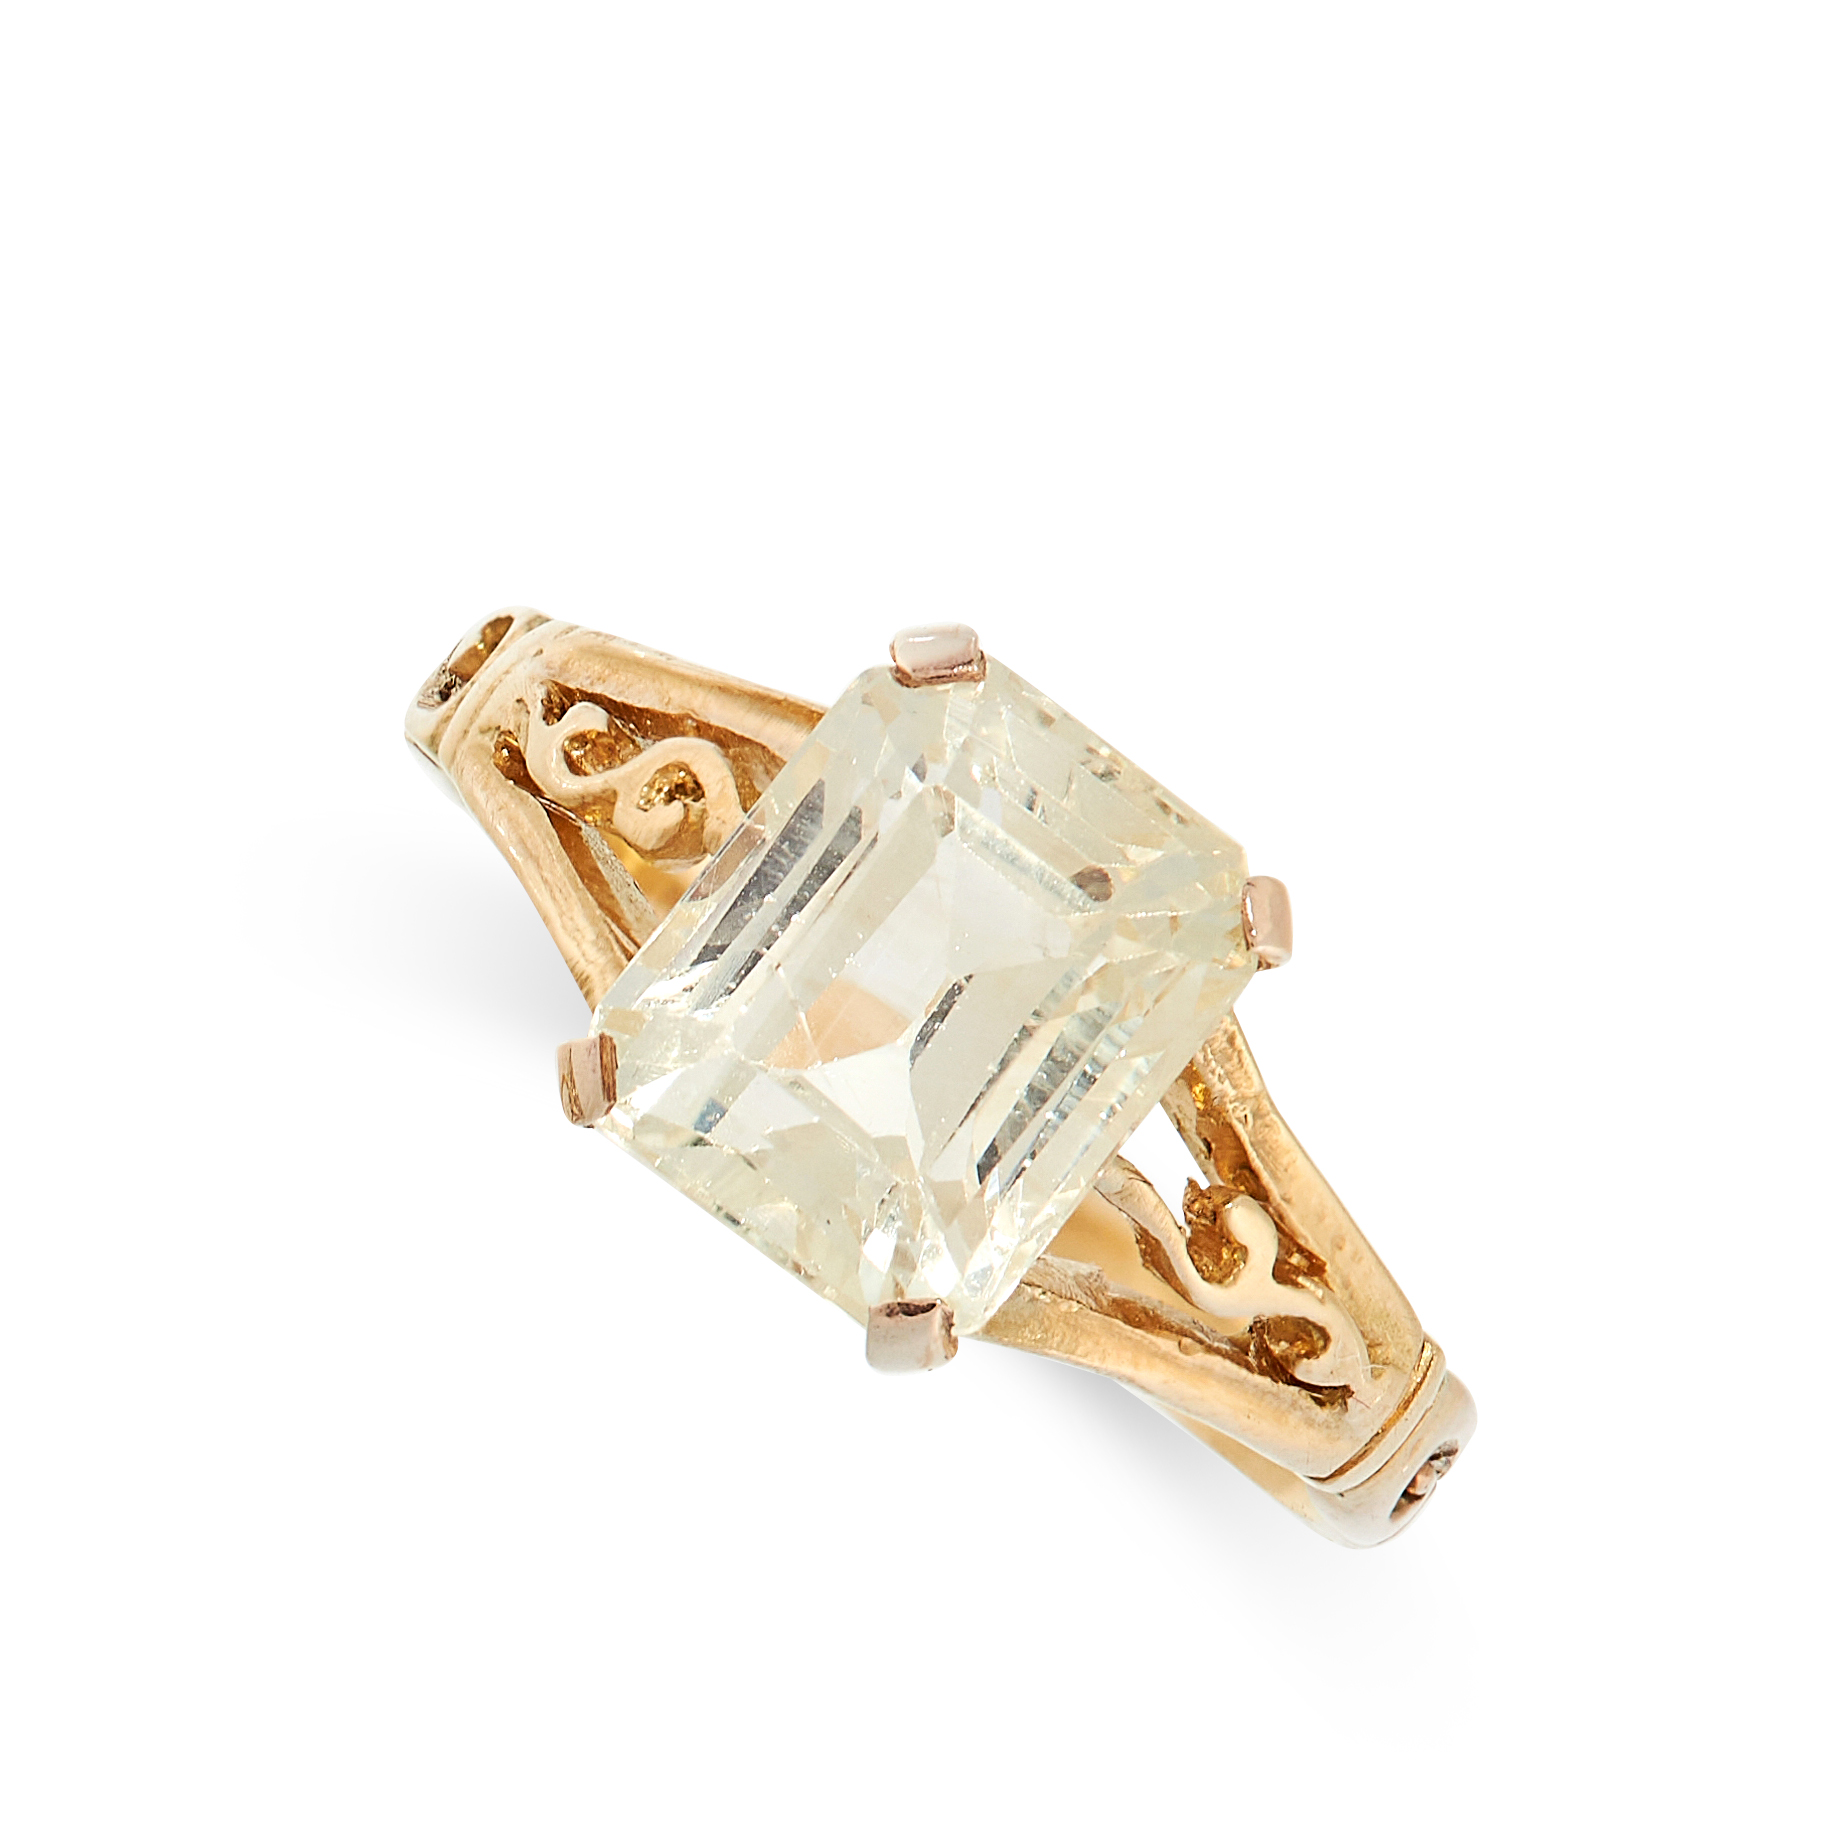 YELLOW SAPPHIRE RING comprising of an emerald cut yellow sapphire of 2.57 carats with scrolling